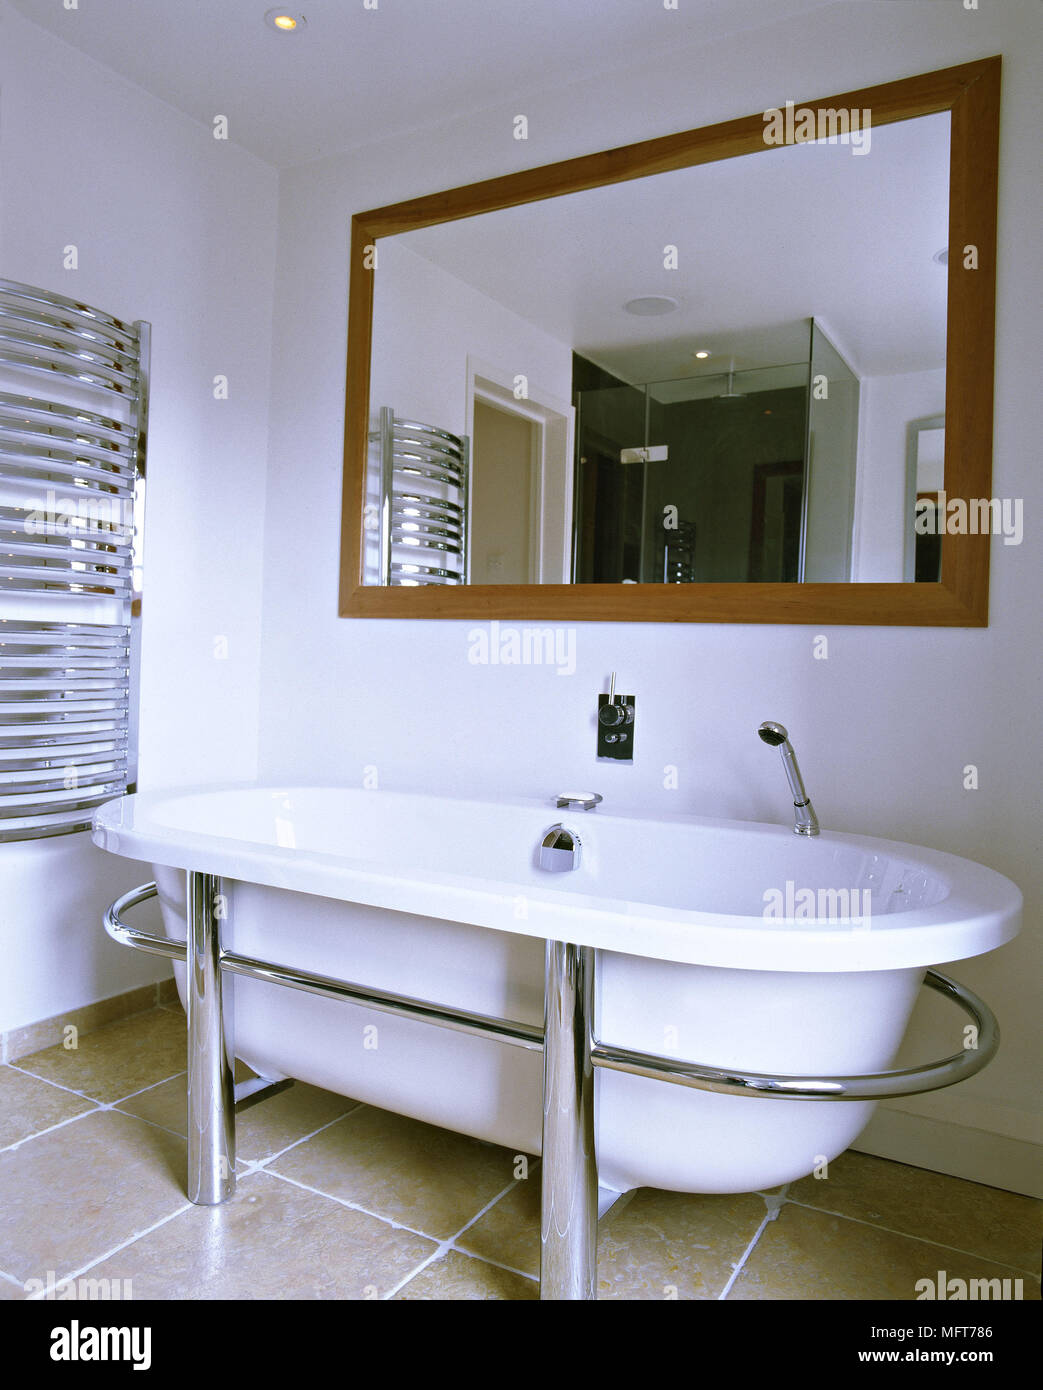 Freestanding Bath Tub Stock Photos & Freestanding Bath Tub Stock ...